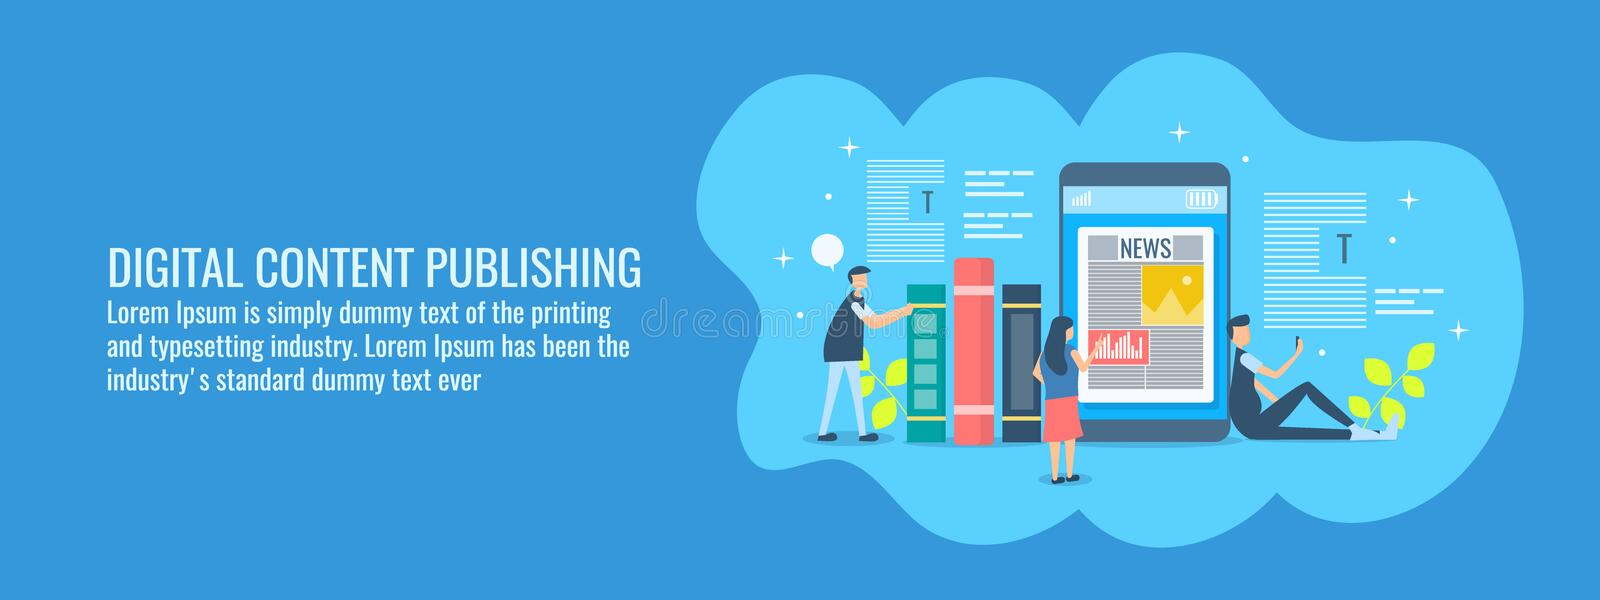 Digital content publishing, people engage with online test, video, image content, reading ebooks on smart phones. Flat banner. Modern concept of engaging online stock illustration